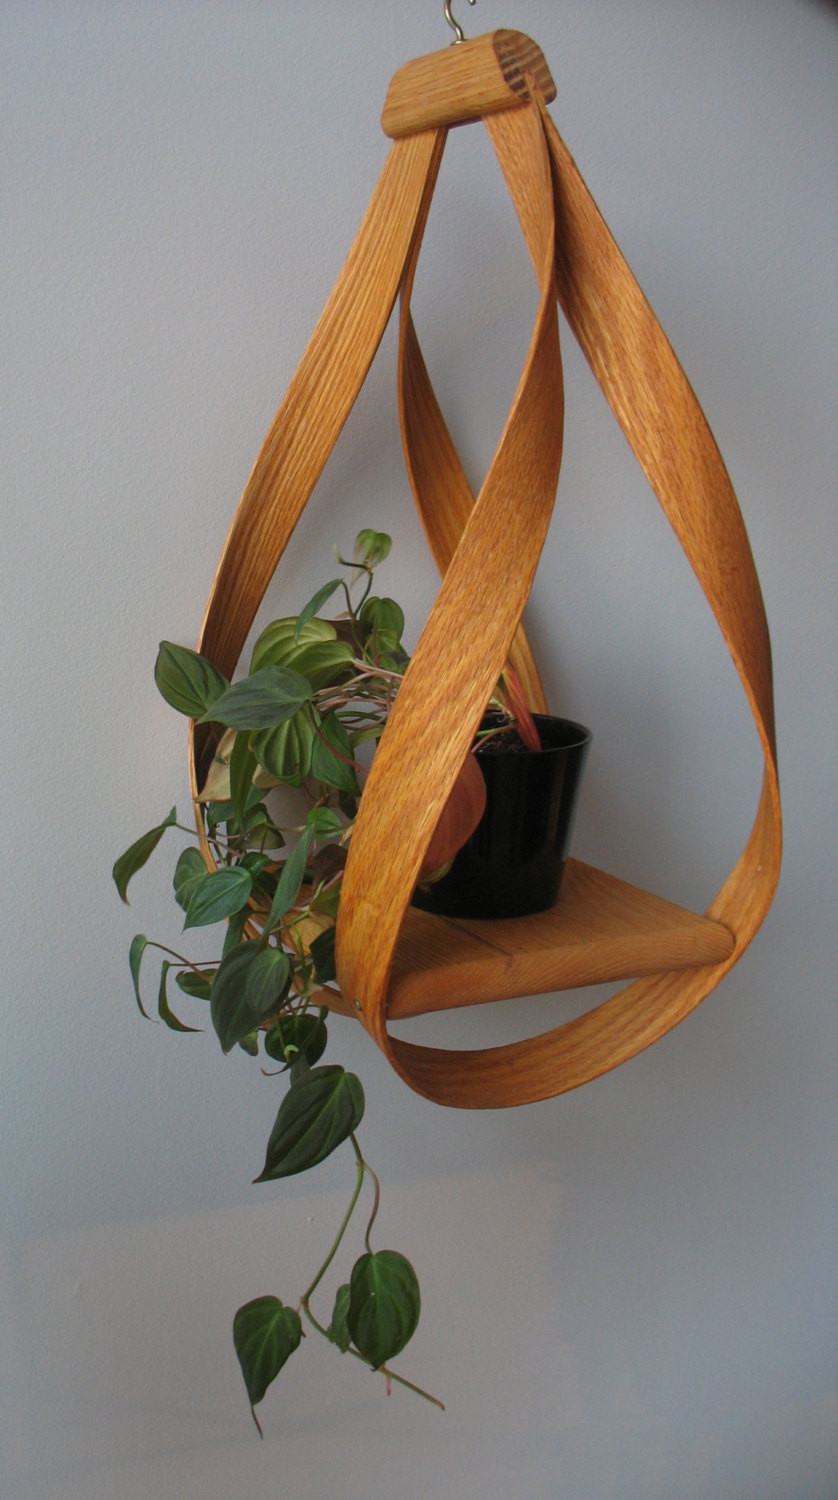 Hanging Plant Holders Beautiful Bentwood Hanging Plant Holder $50 00 Via Etsy Futura Of Wonderful 48 Ideas Hanging Plant Holders